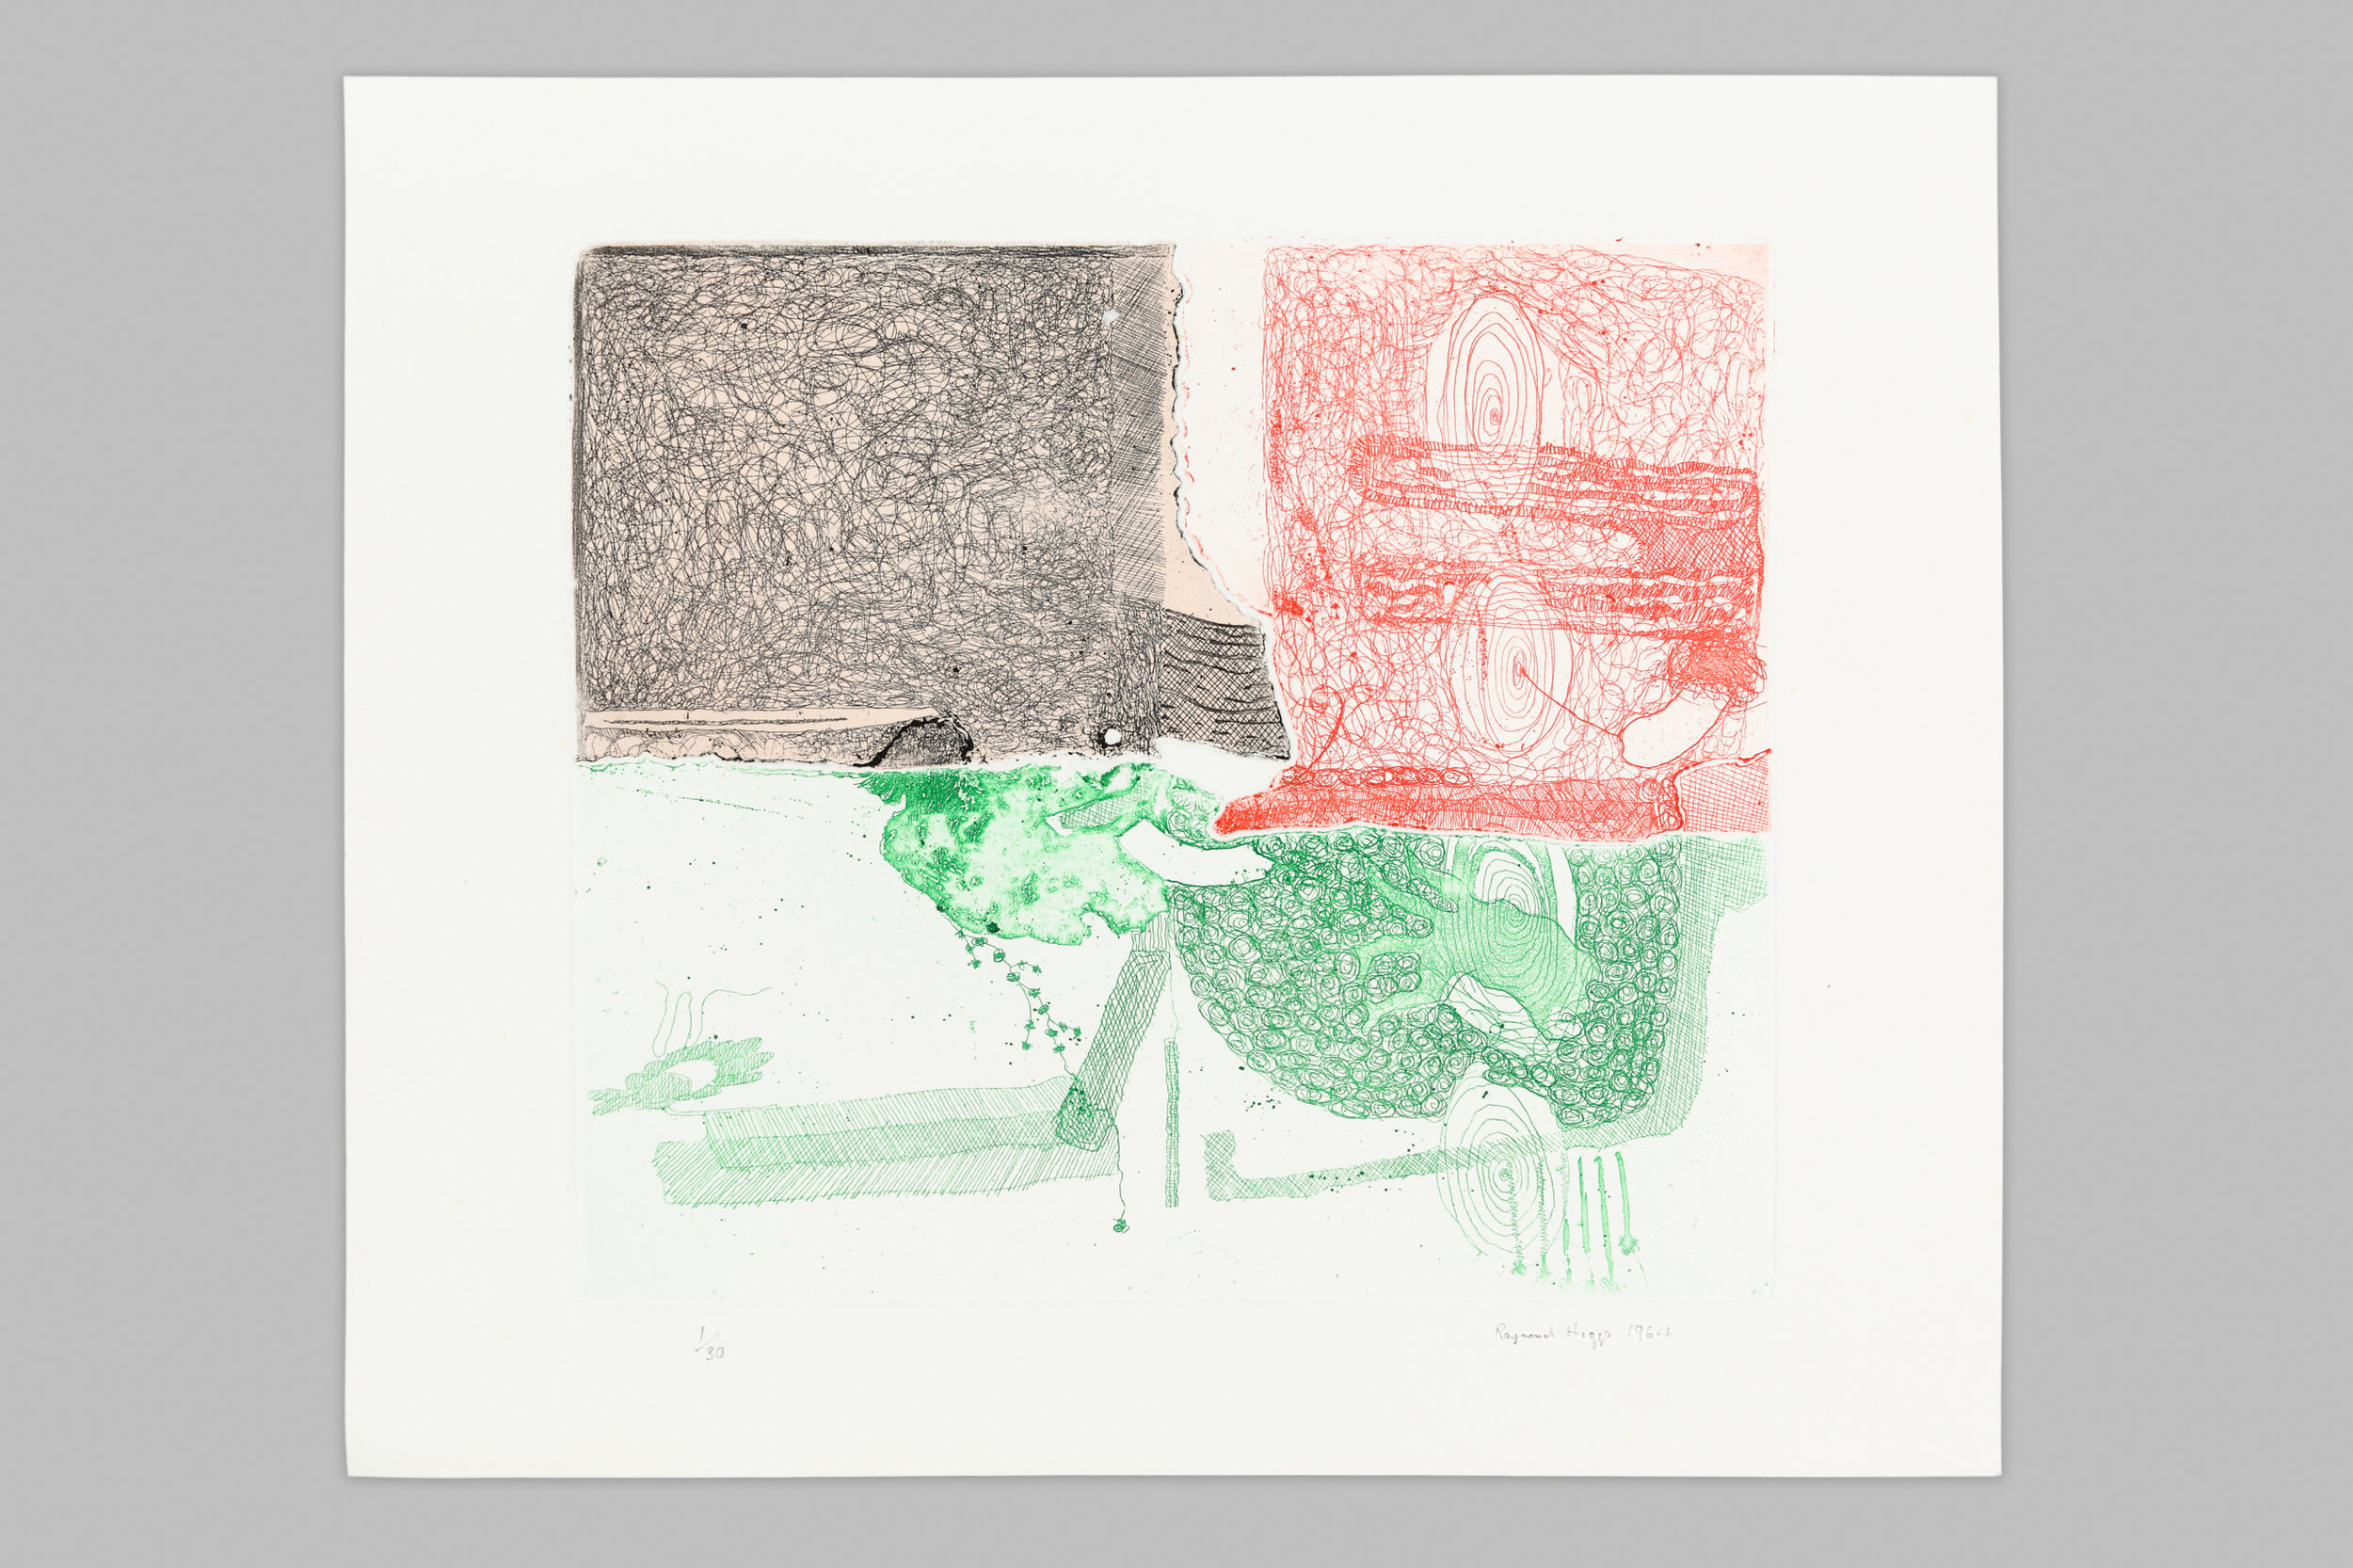 Semi-abract line etching using delicate green, red and black lines.